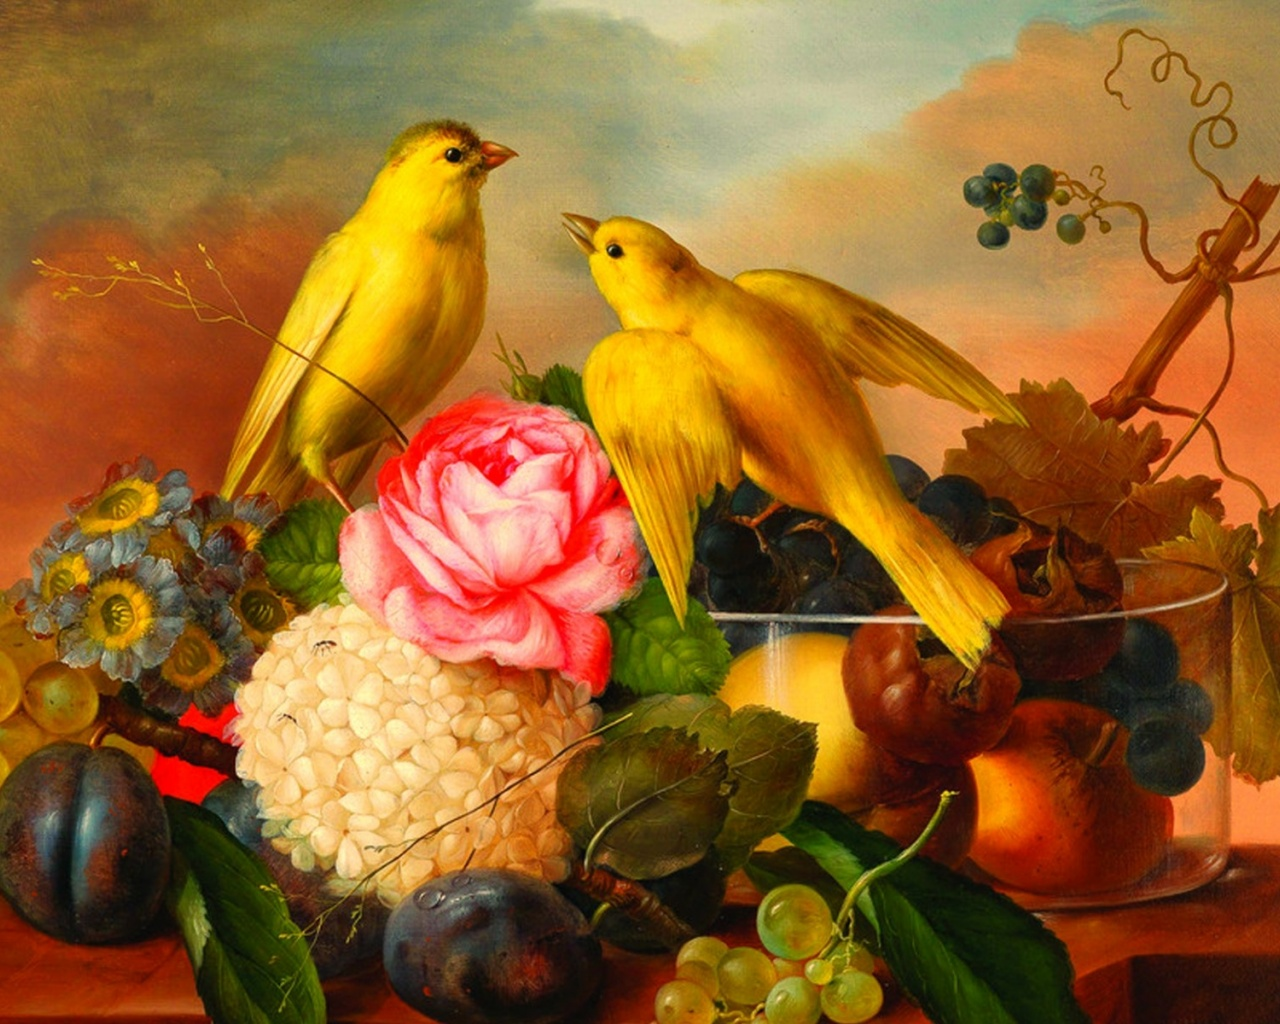 Flowers and fruits wallpapers - 1280x1024 Yellow Birds Flowers Fruits